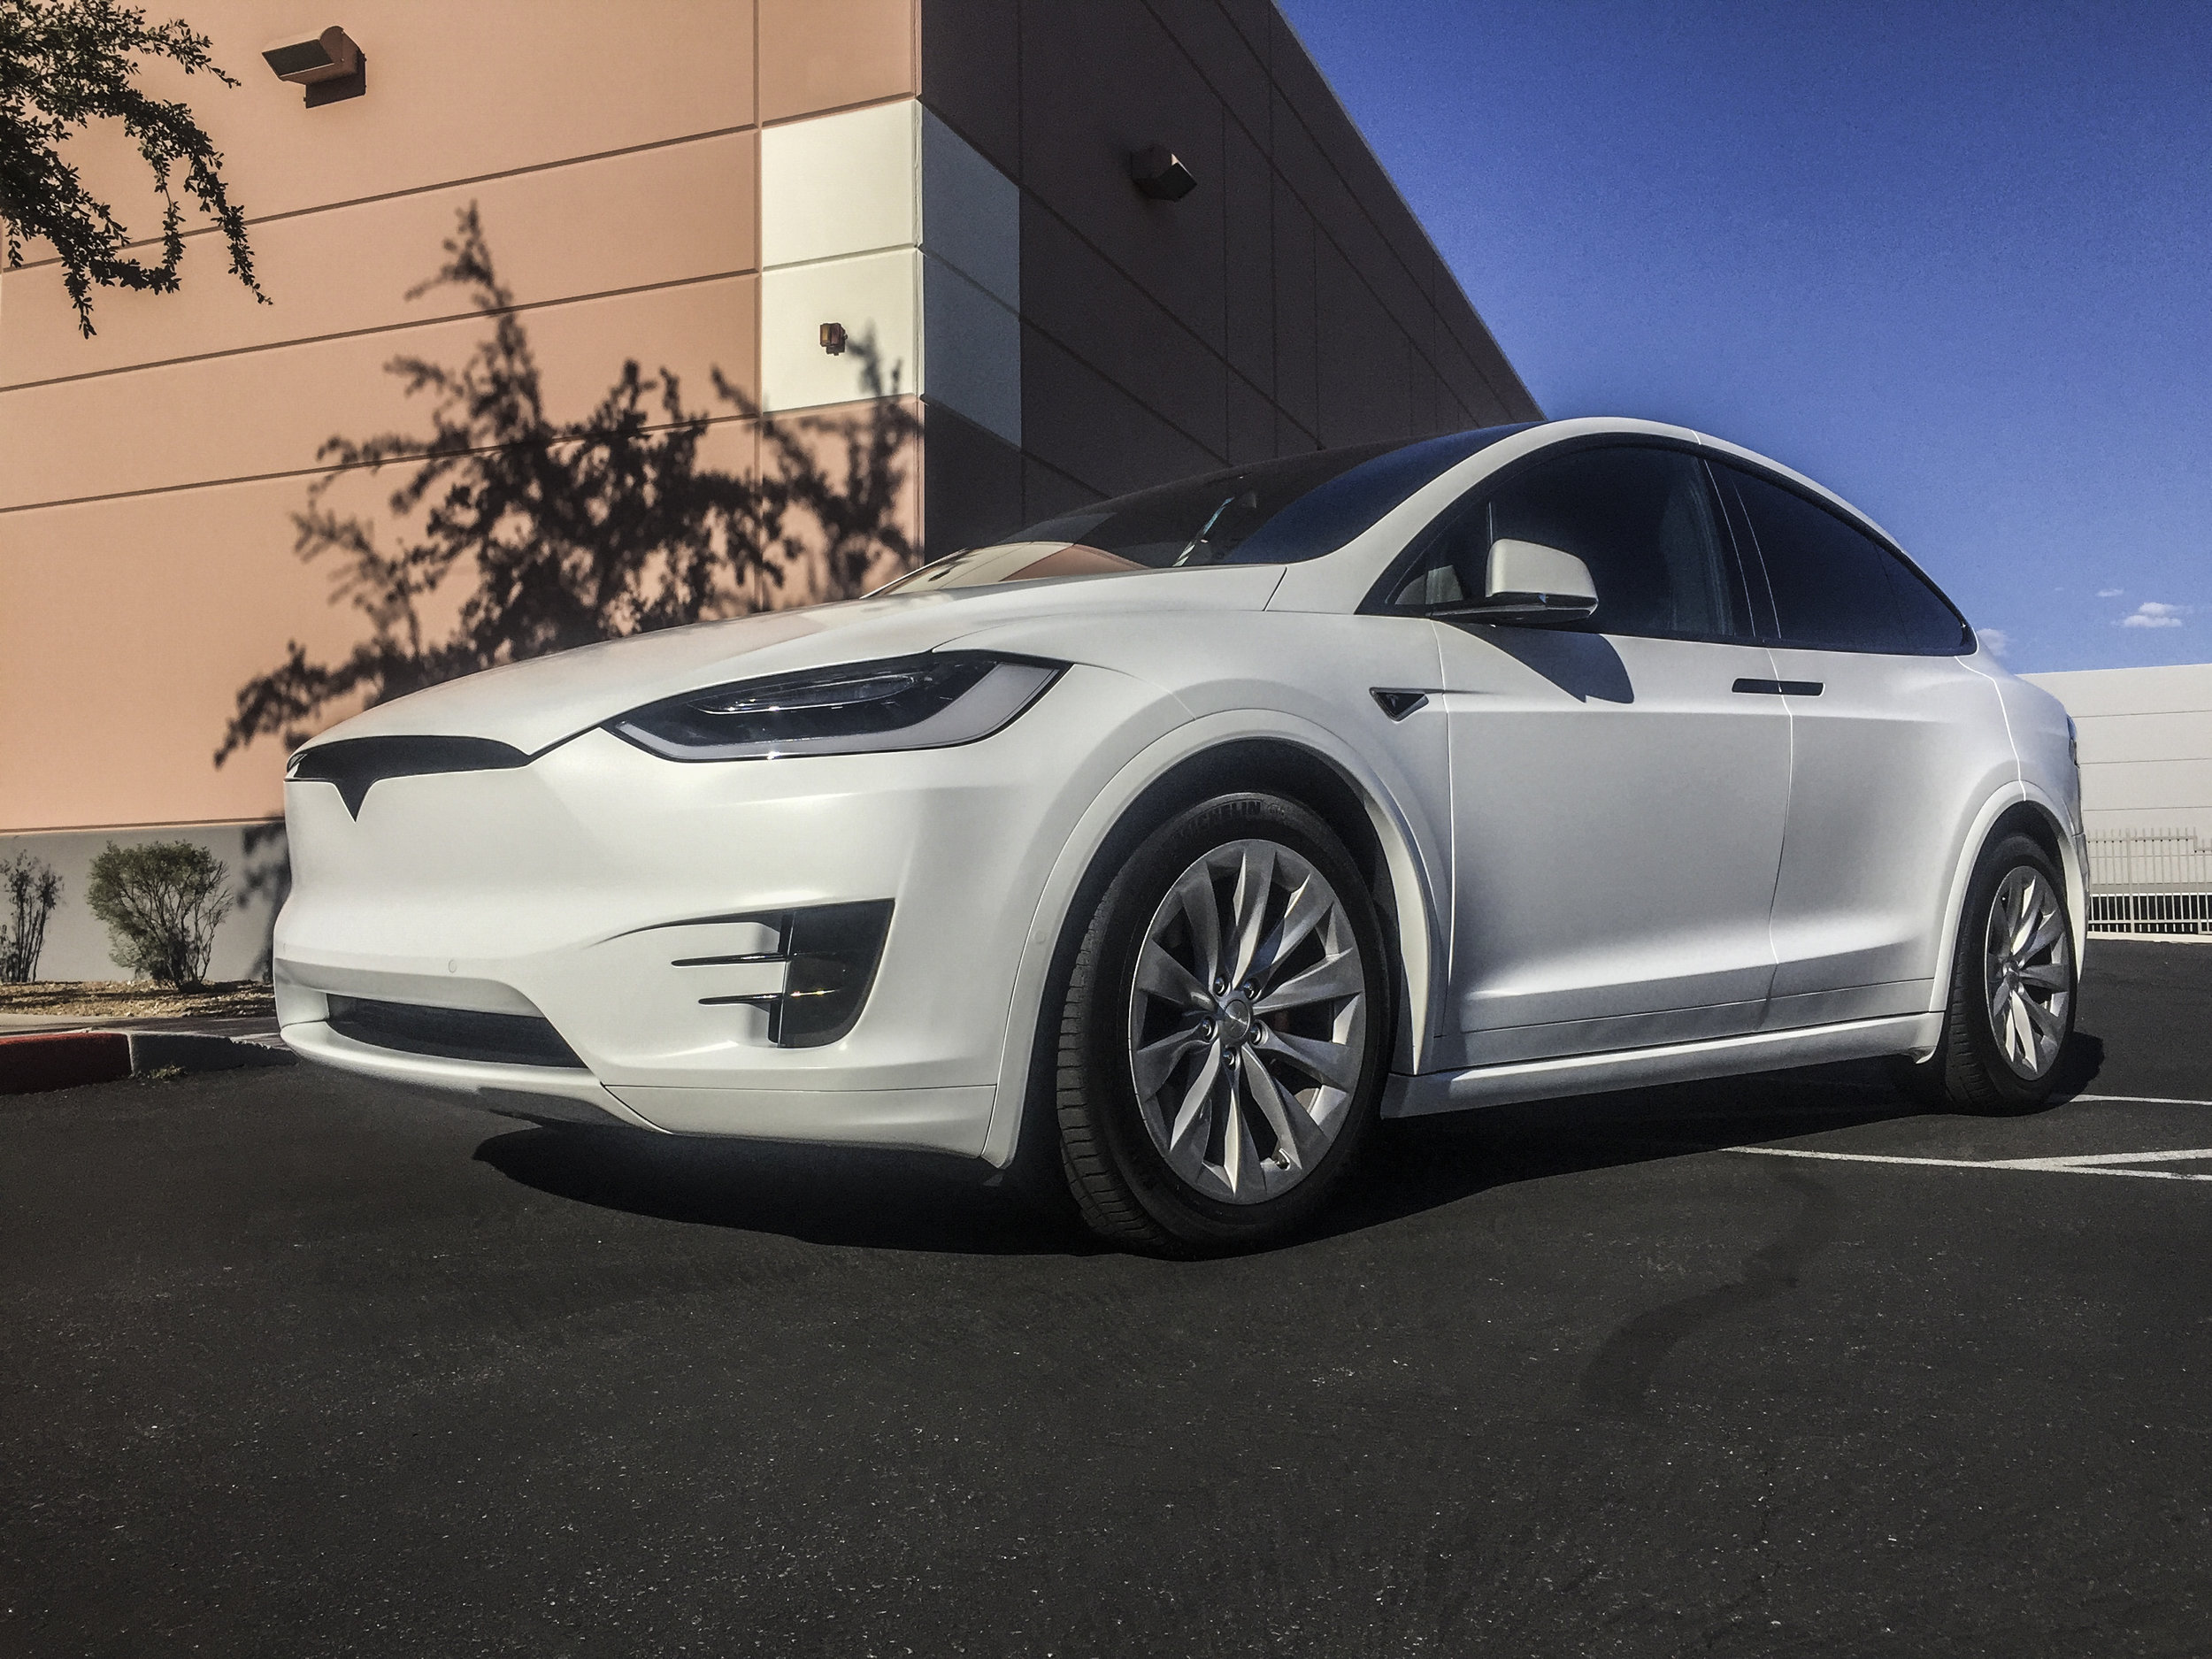 Tesla Model X - All Satin White including Plastics and Chrome Delete